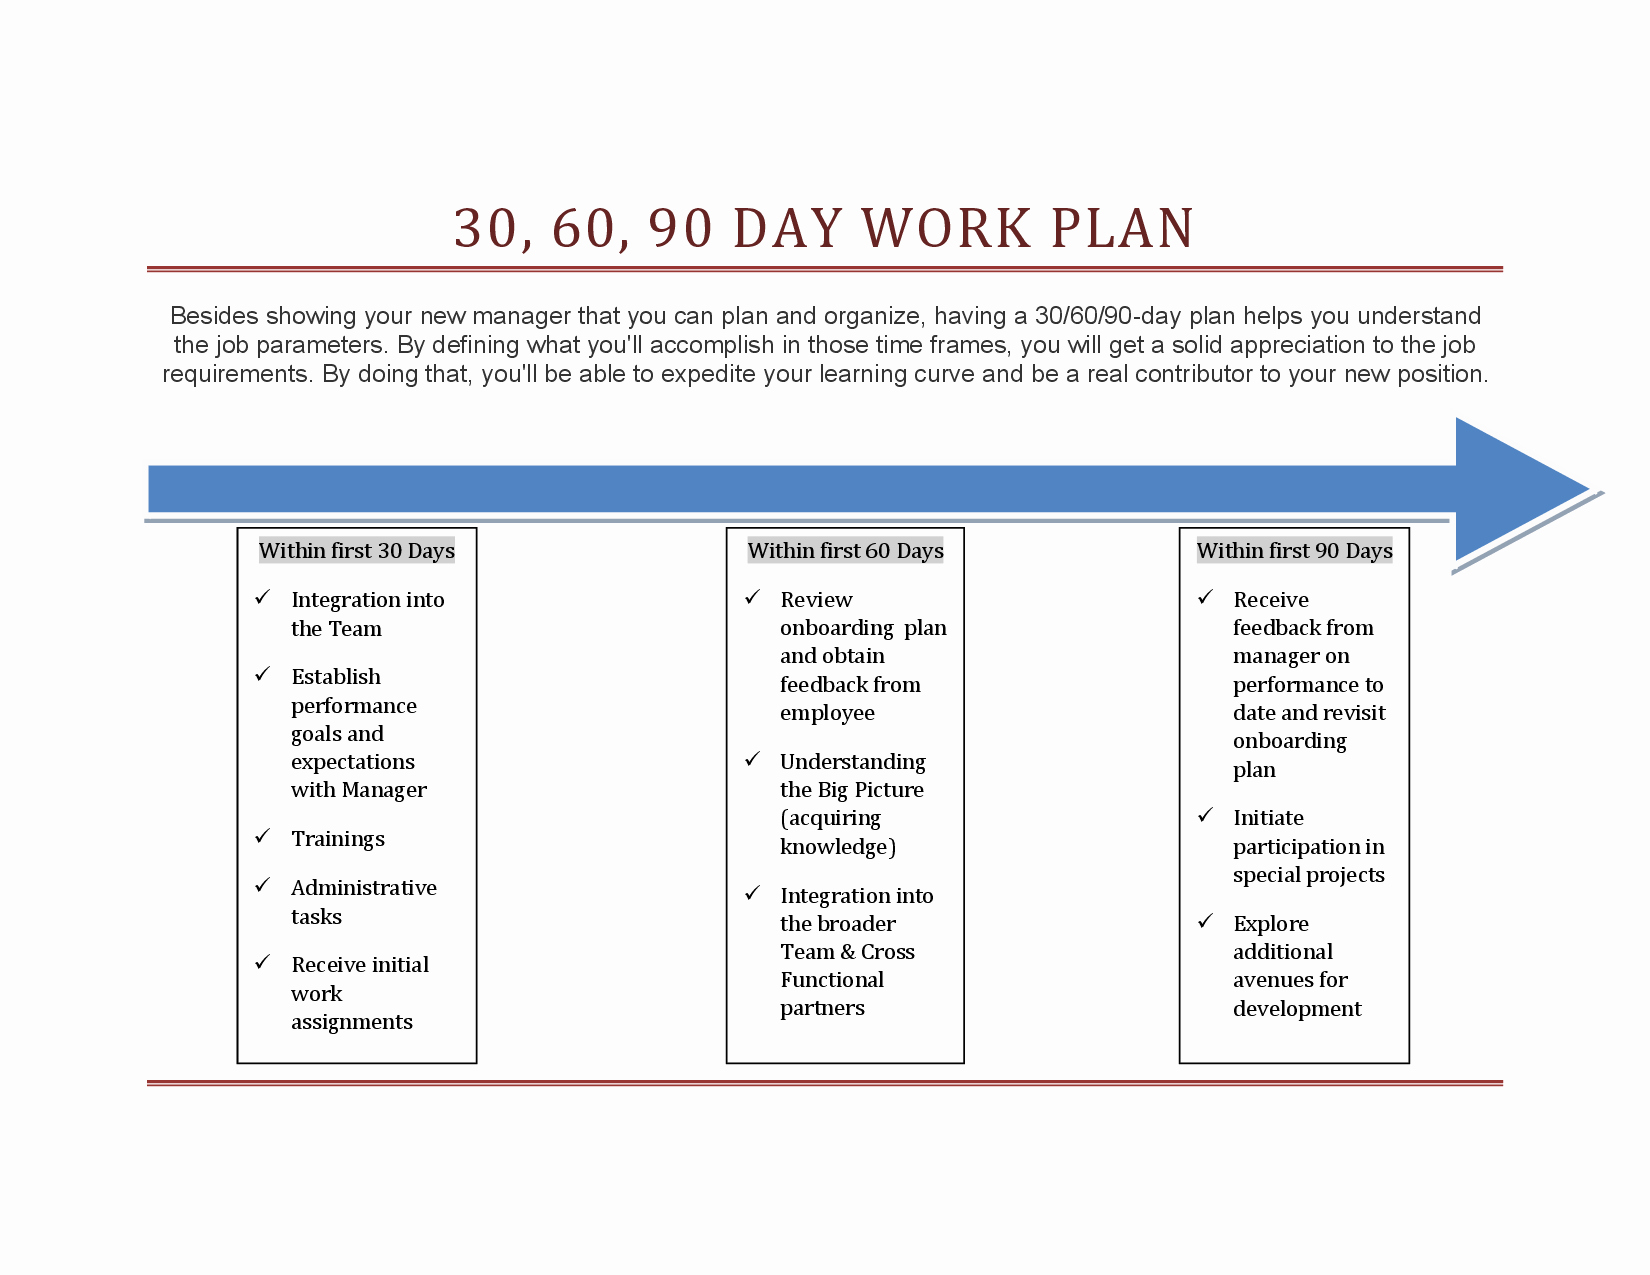 90 Day Work Plan Template Luxury 30 60 90 Days Plan New Job Marketing Google Search